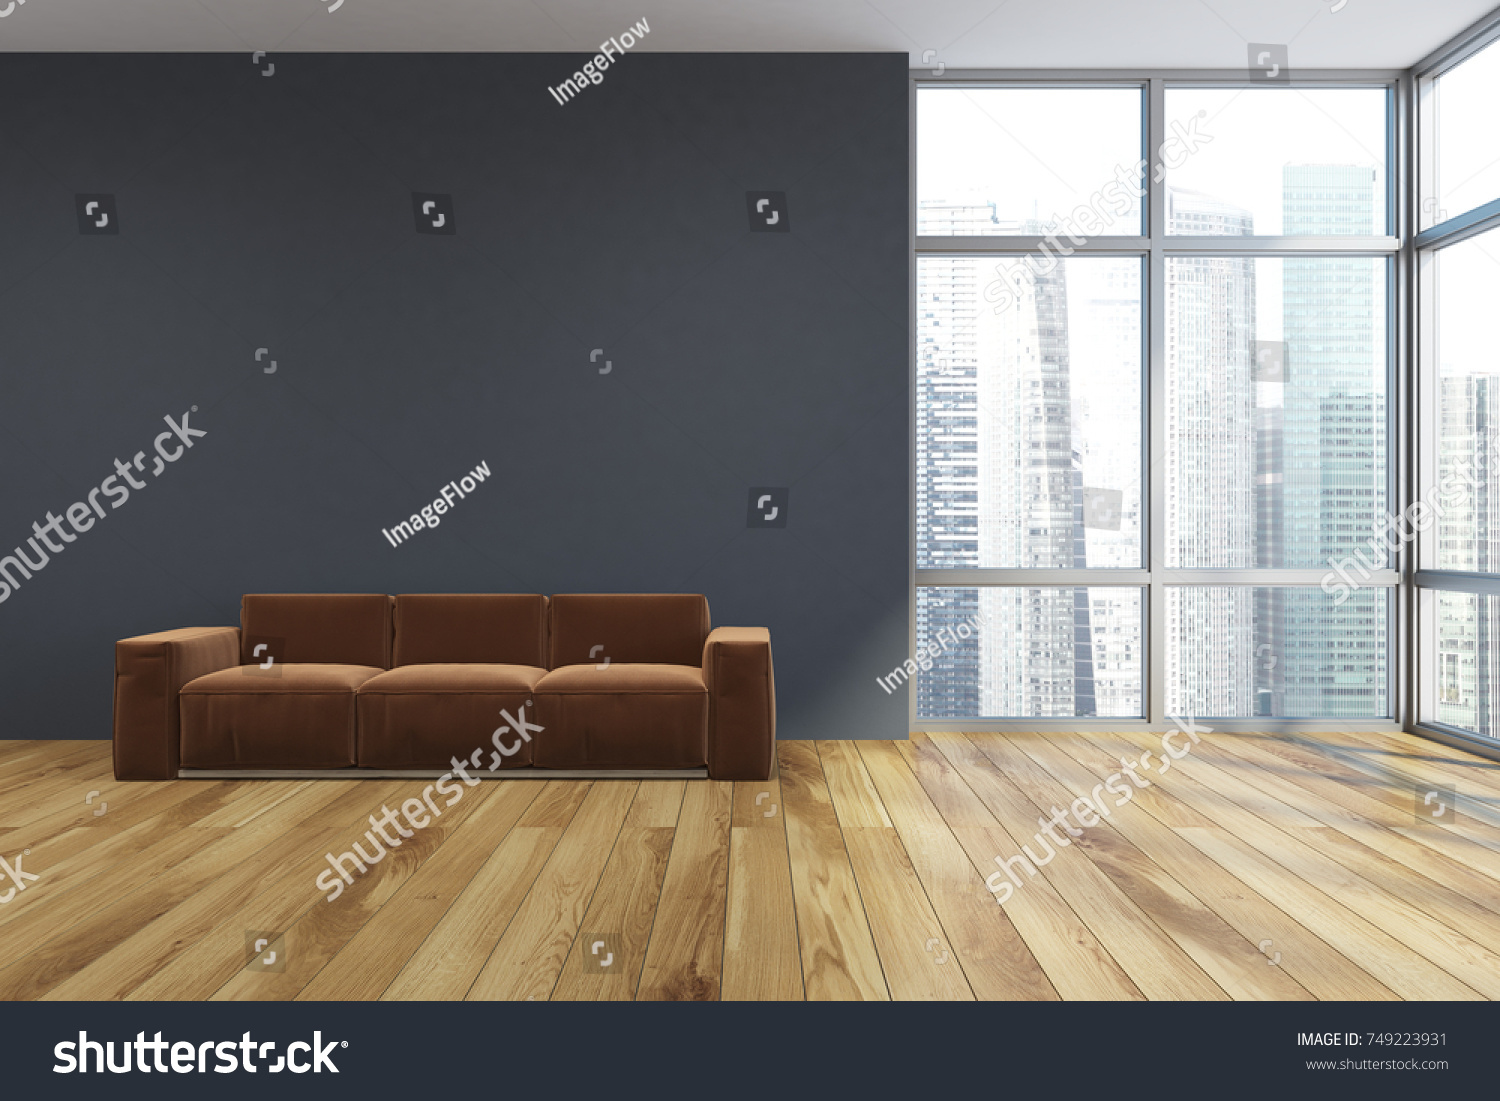 Empty Living Room Interior With Dark Gray Walls Loft Windows And Brown Sofa On A